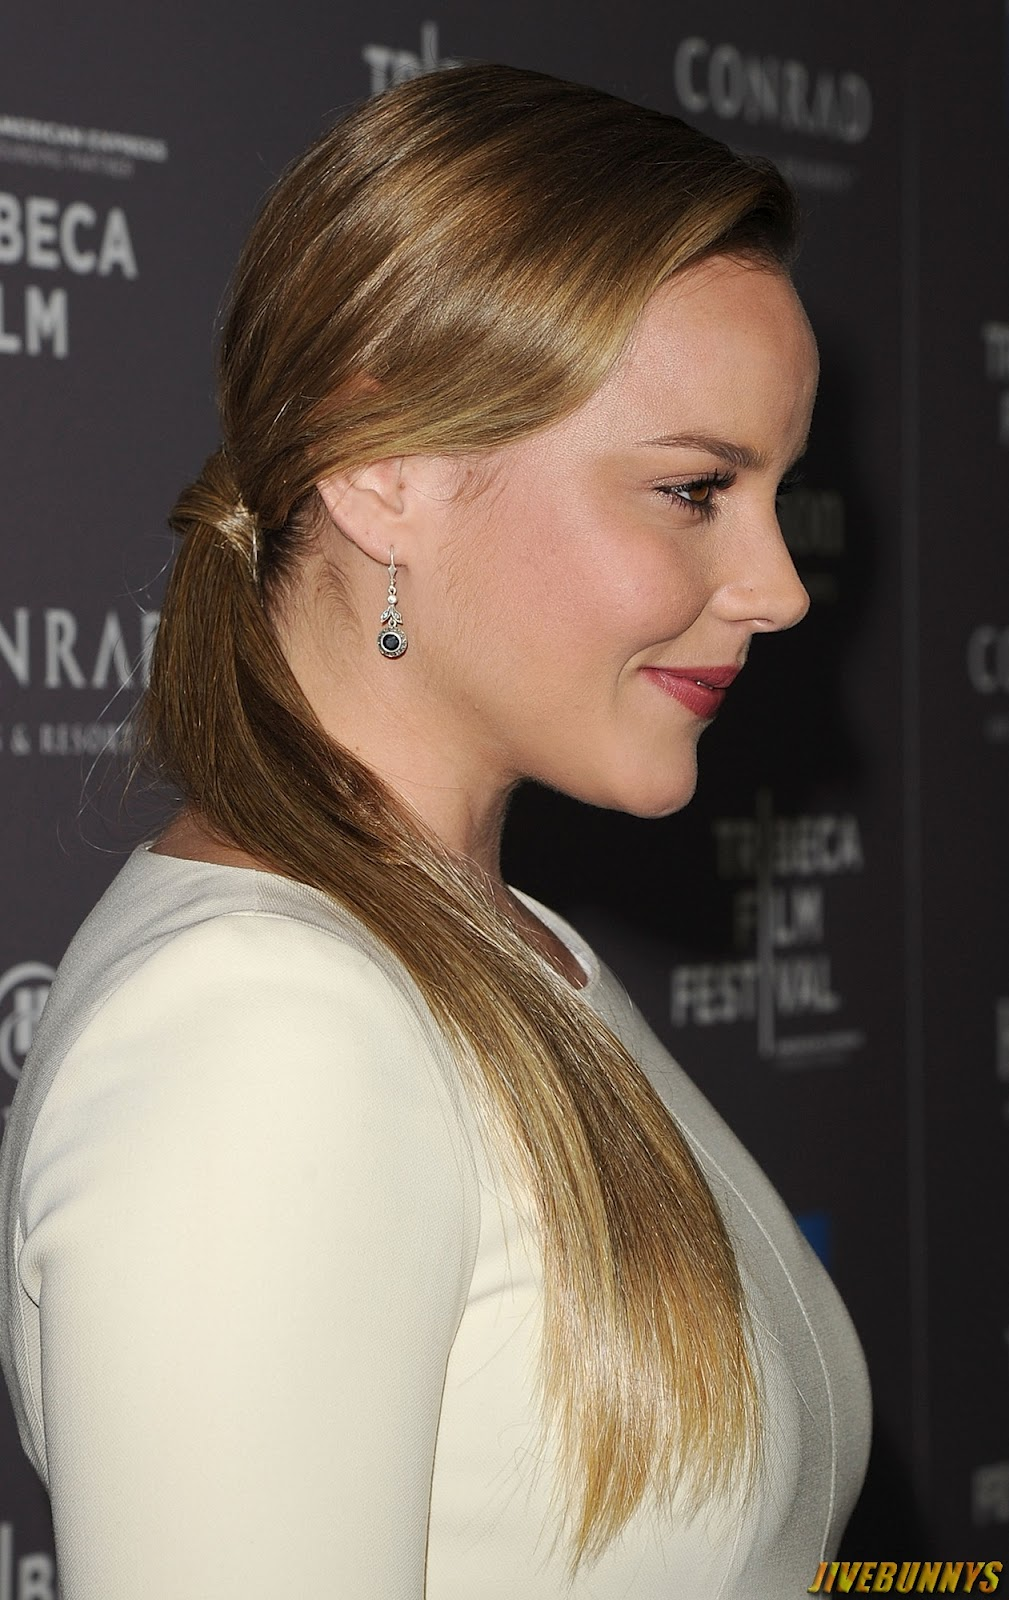 biography of abbie cornish next gallery of abbie cornish Abbie Cornish